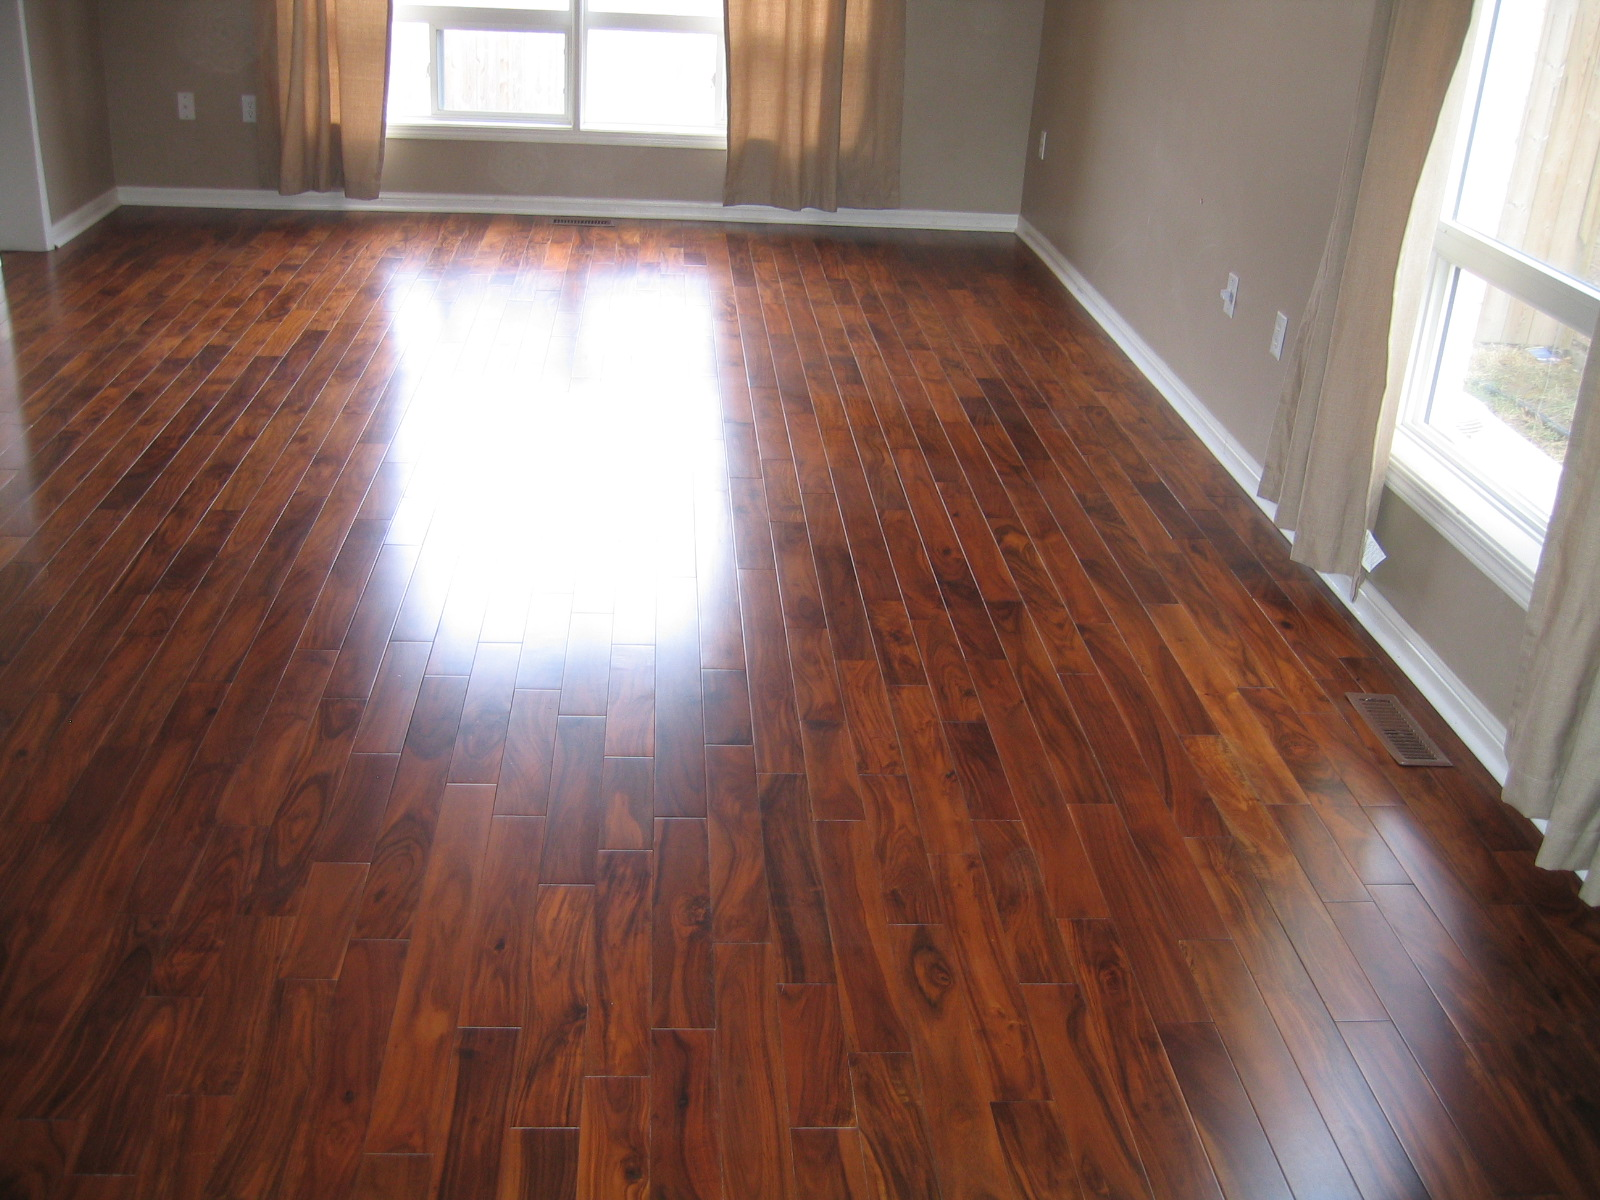 Bamboo hardwood floor installation dartex contracting for Hardwood floors or carpet